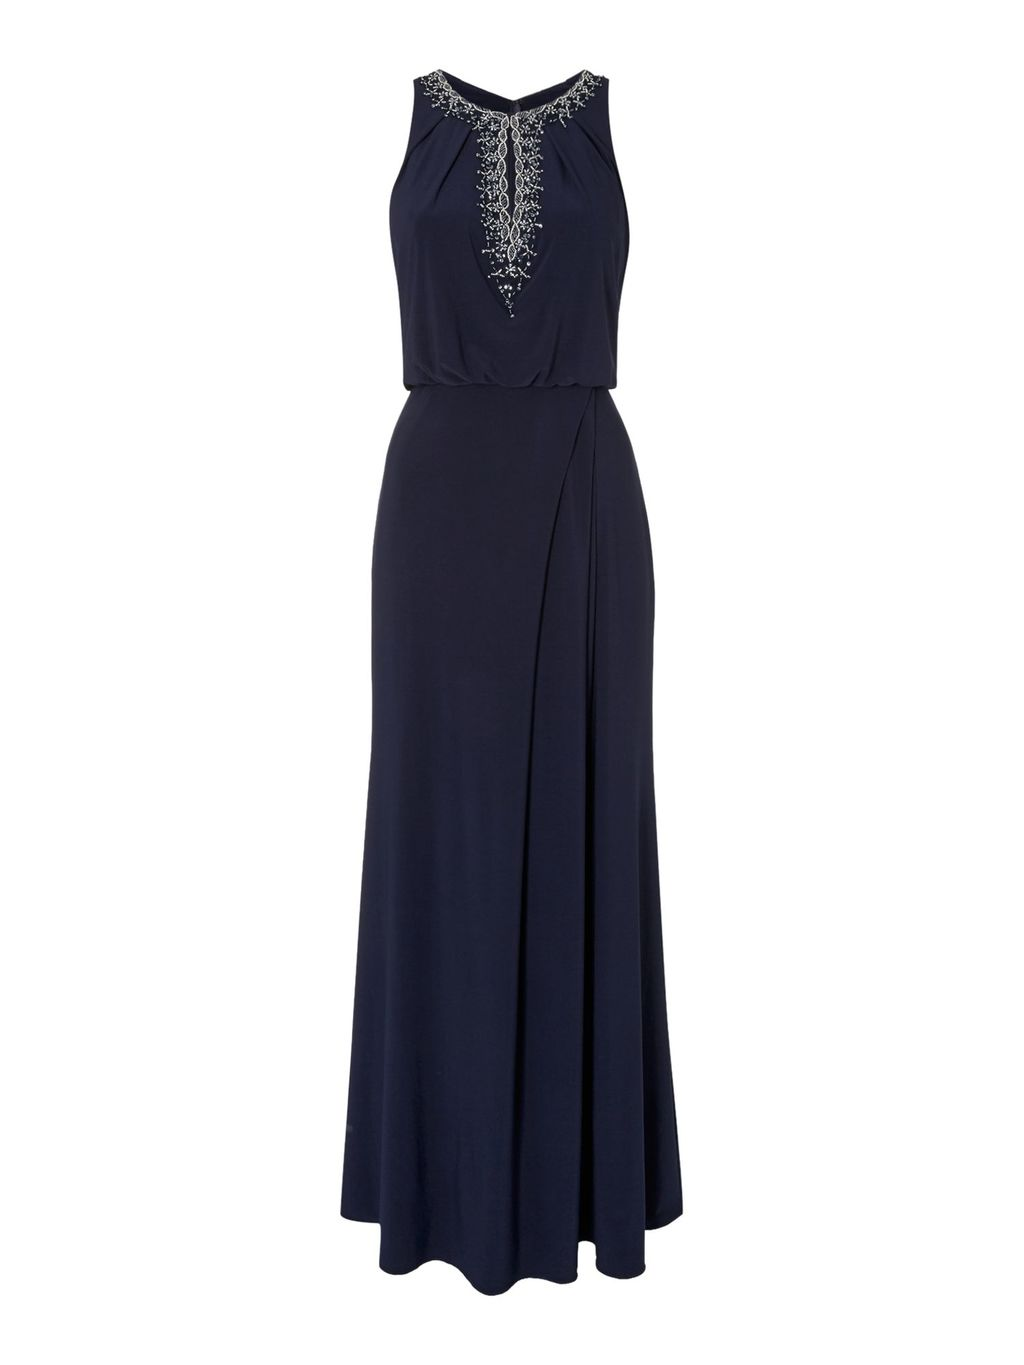 Blouson Gown With Keyhole Neckline, Navy - pattern: plain; sleeve style: sleeveless; style: maxi dress; length: ankle length; predominant colour: navy; secondary colour: silver; occasions: evening; fit: body skimming; neckline: peep hole neckline; fibres: polyester/polyamide - 100%; hip detail: subtle/flattering hip detail; sleeve length: sleeveless; texture group: crepes; pattern type: fabric; embellishment: beading; season: a/w 2015; wardrobe: event; embellishment location: bust